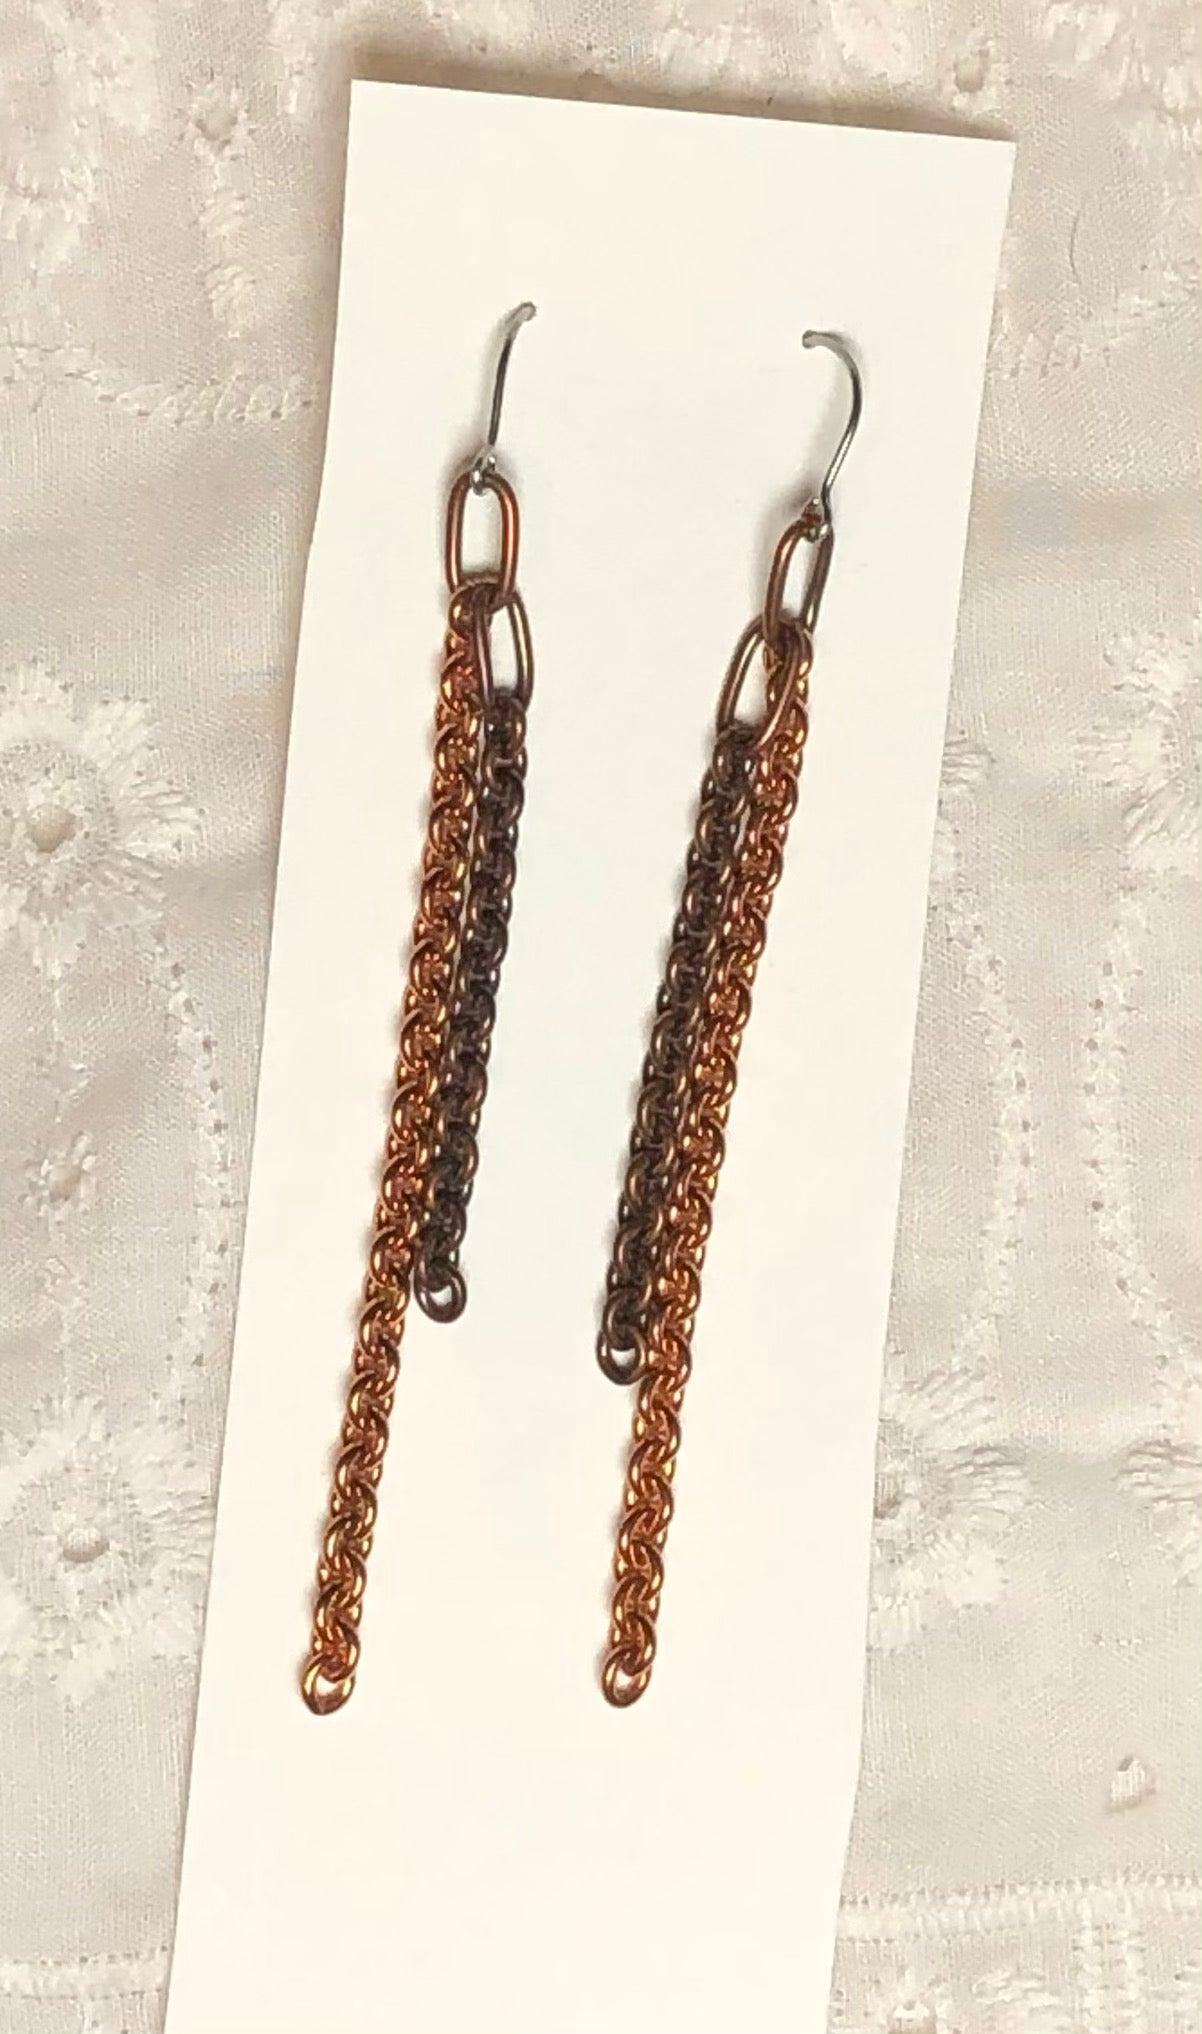 More Copper Chain & Steel Dangle Earrings